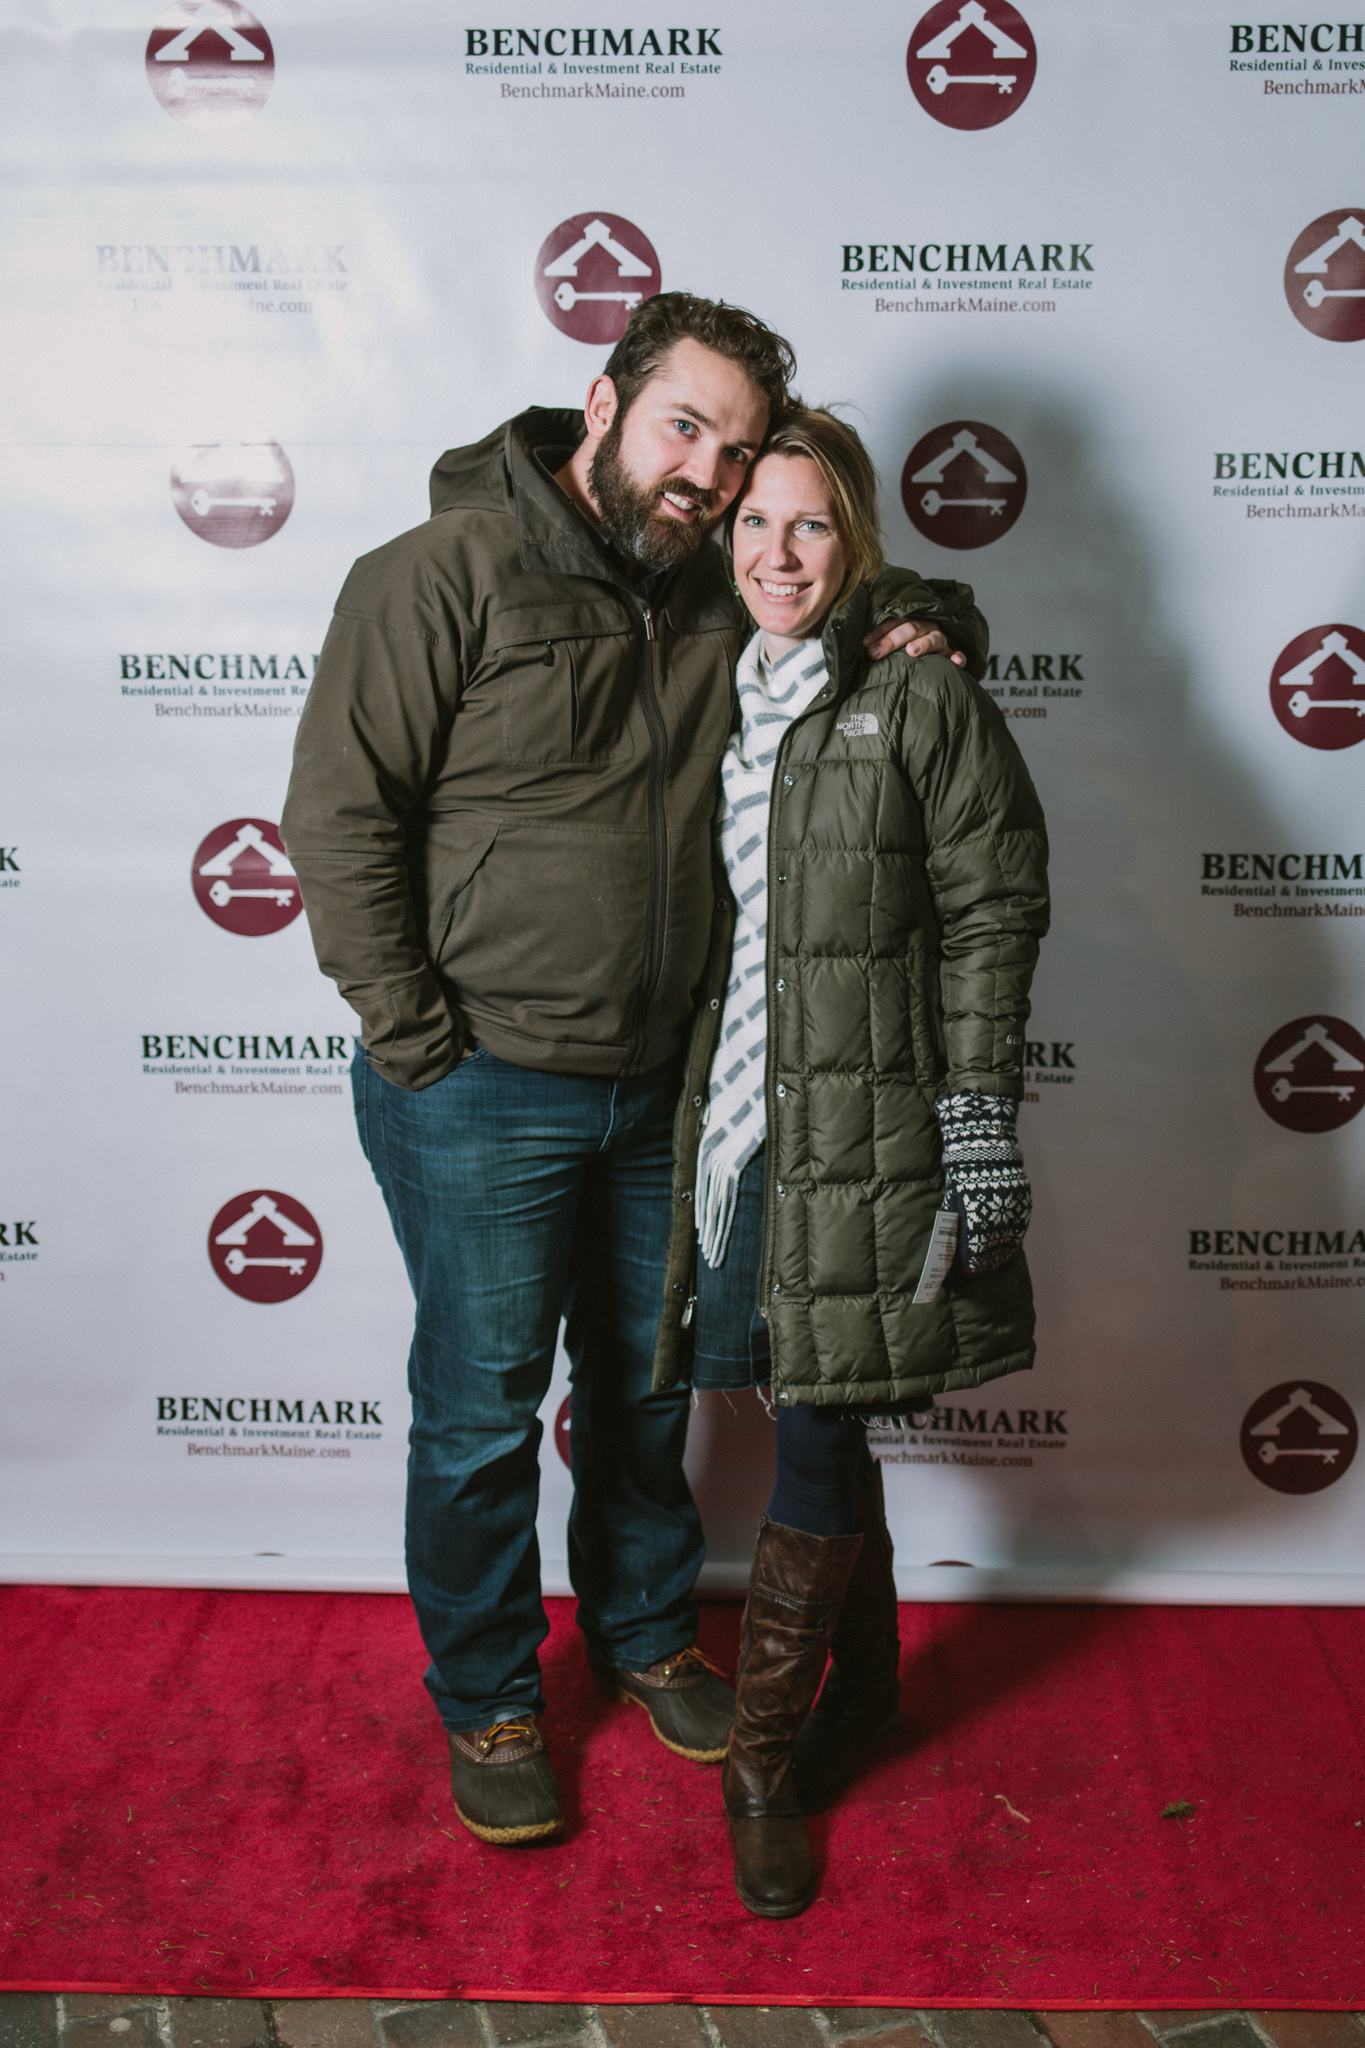 Benchmark_Holiday_Party_SR-072.jpg